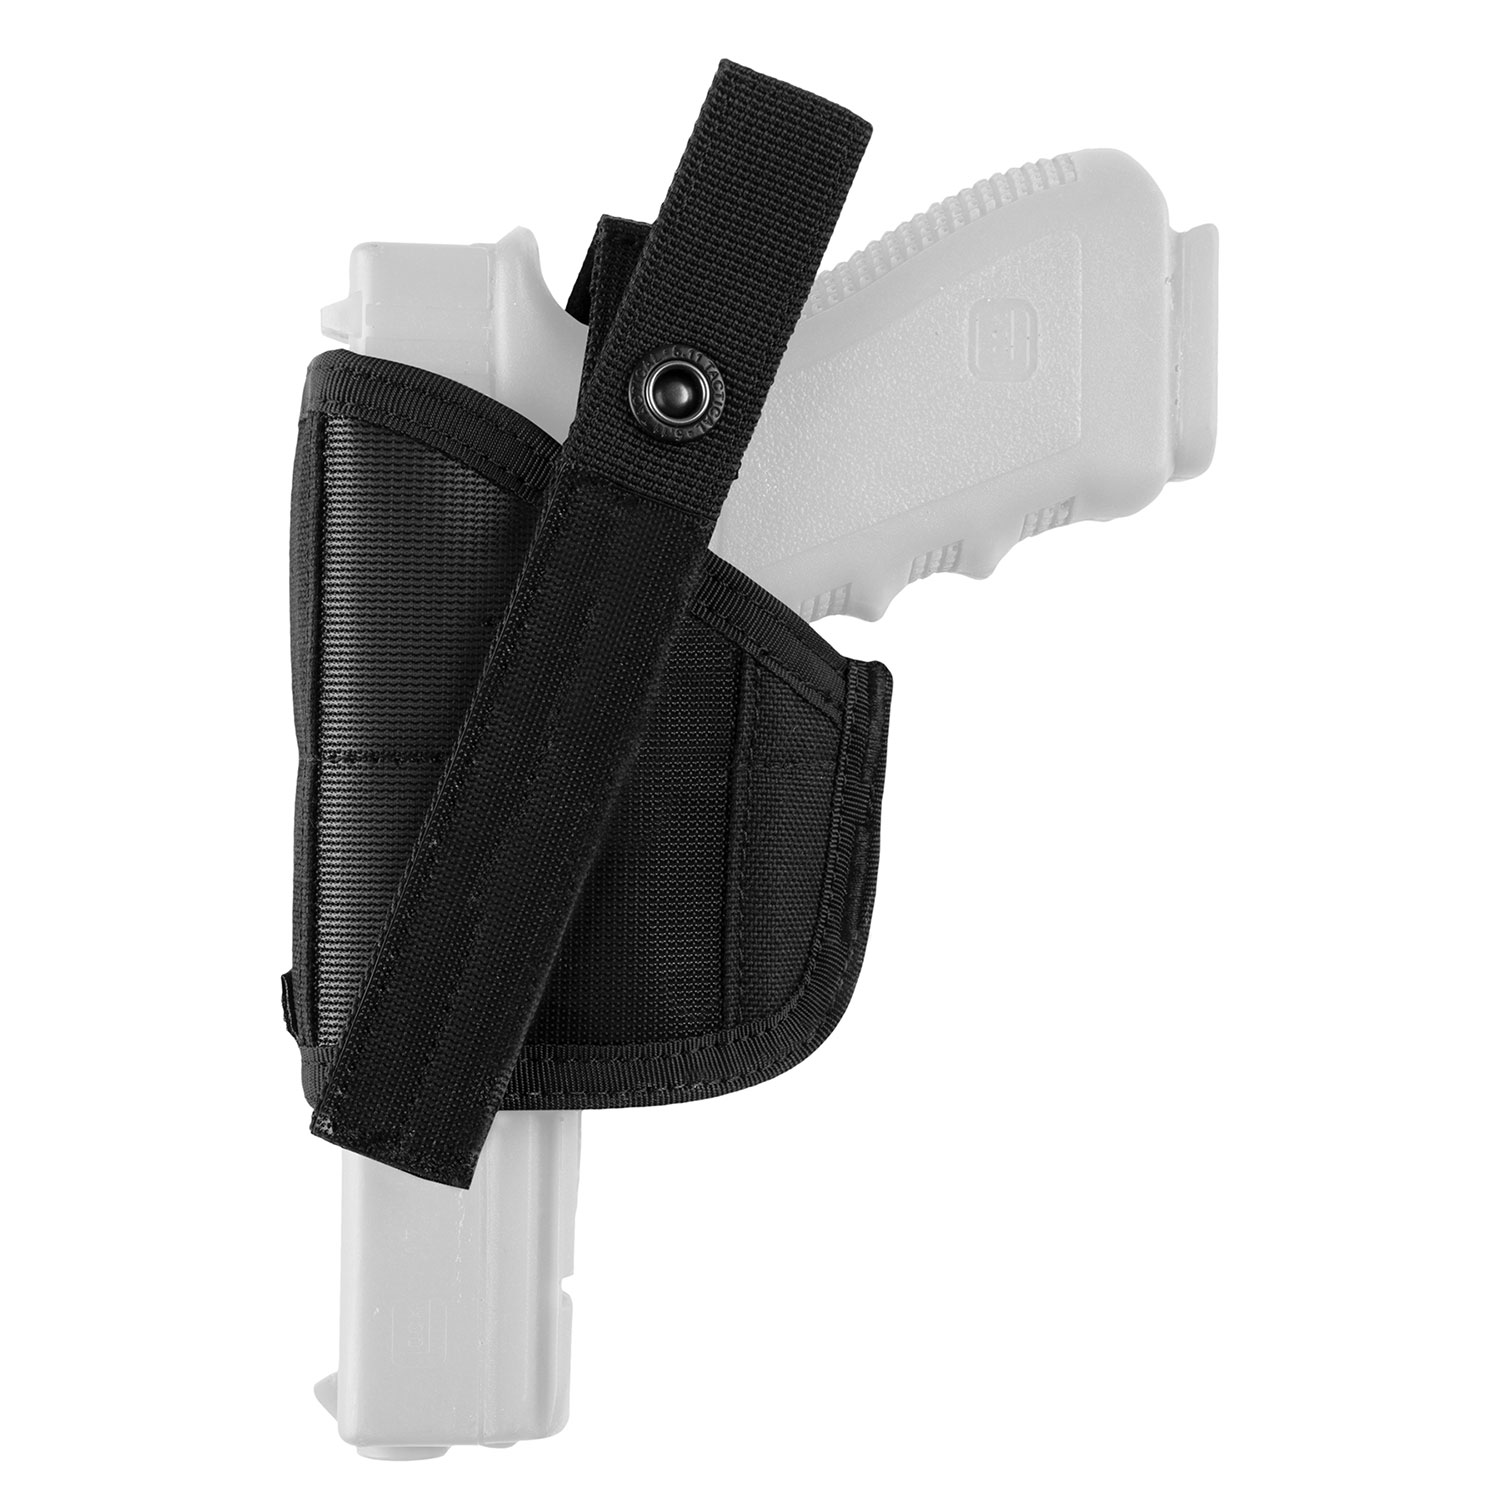 5.11 Tactical TacTec 2.0 Holster